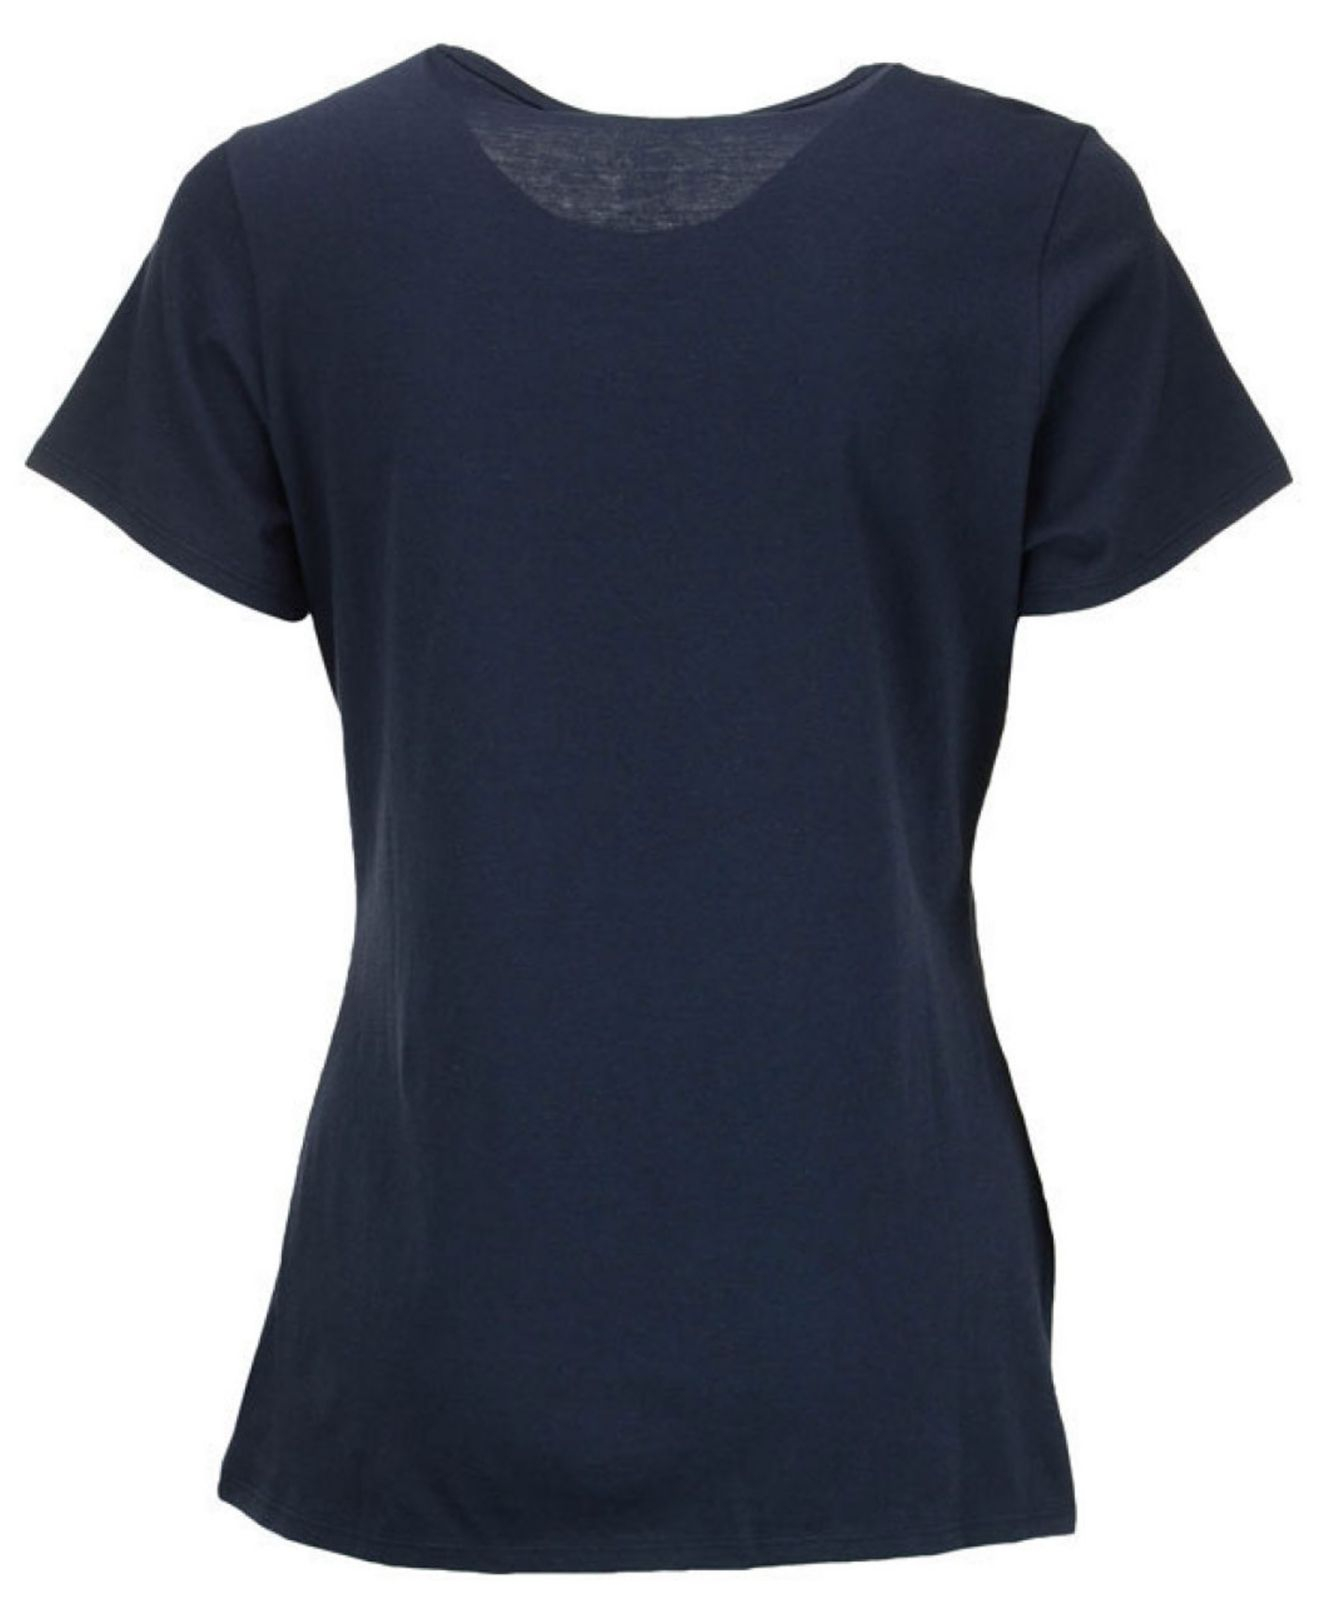 Womens Navy Shirt Custom Shirt